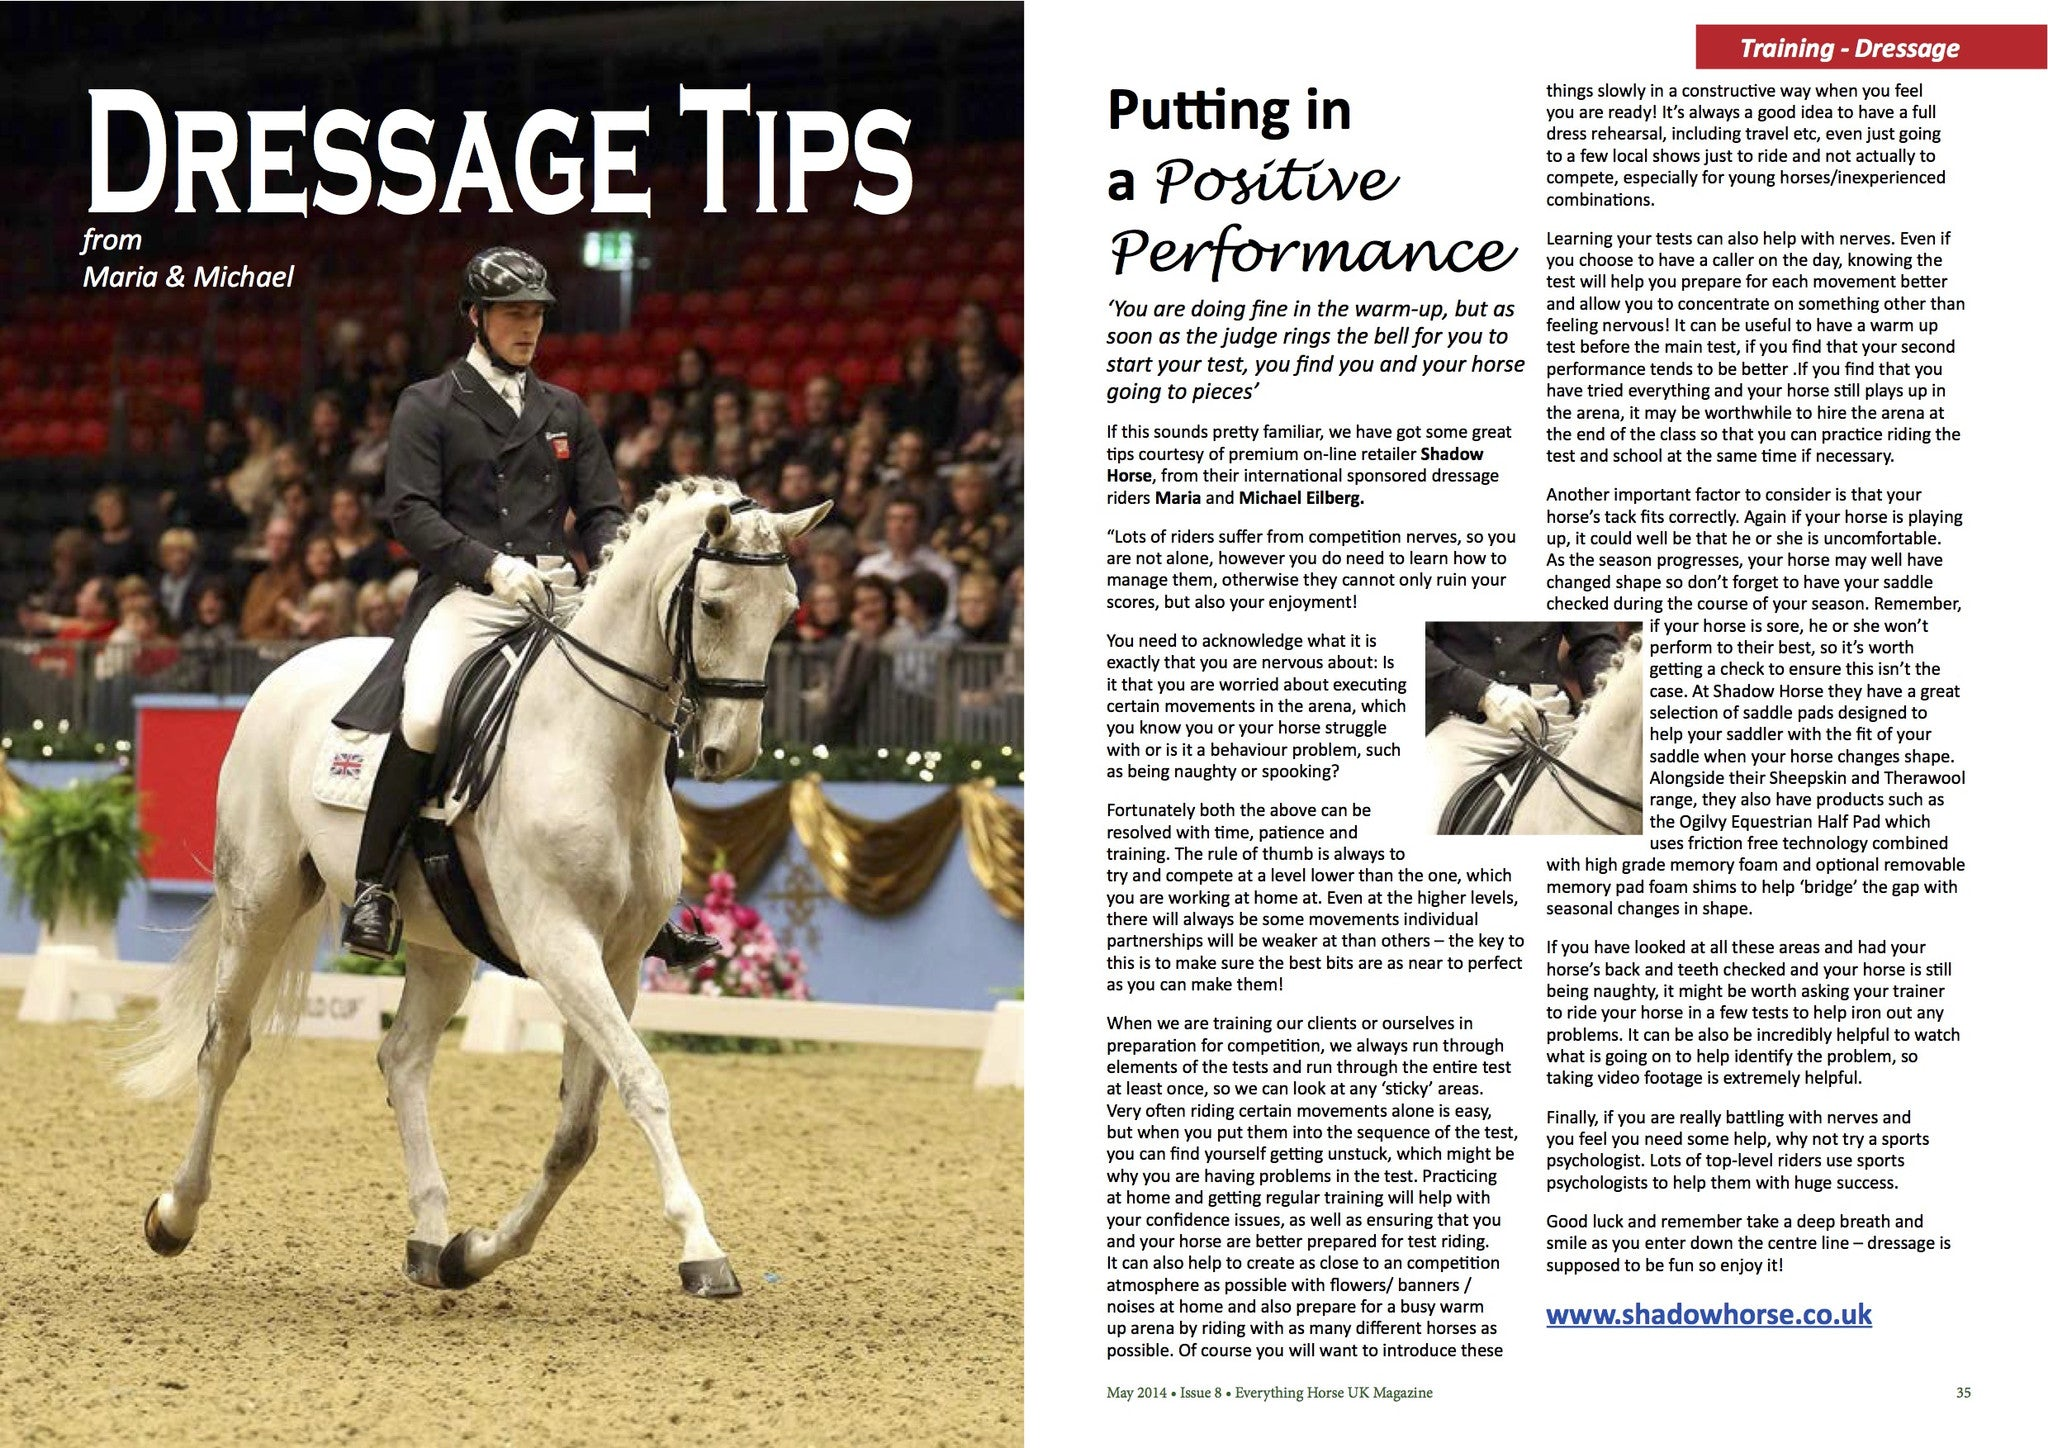 Maria & Michael Eilberg on handling the run-up to a Dressage competition